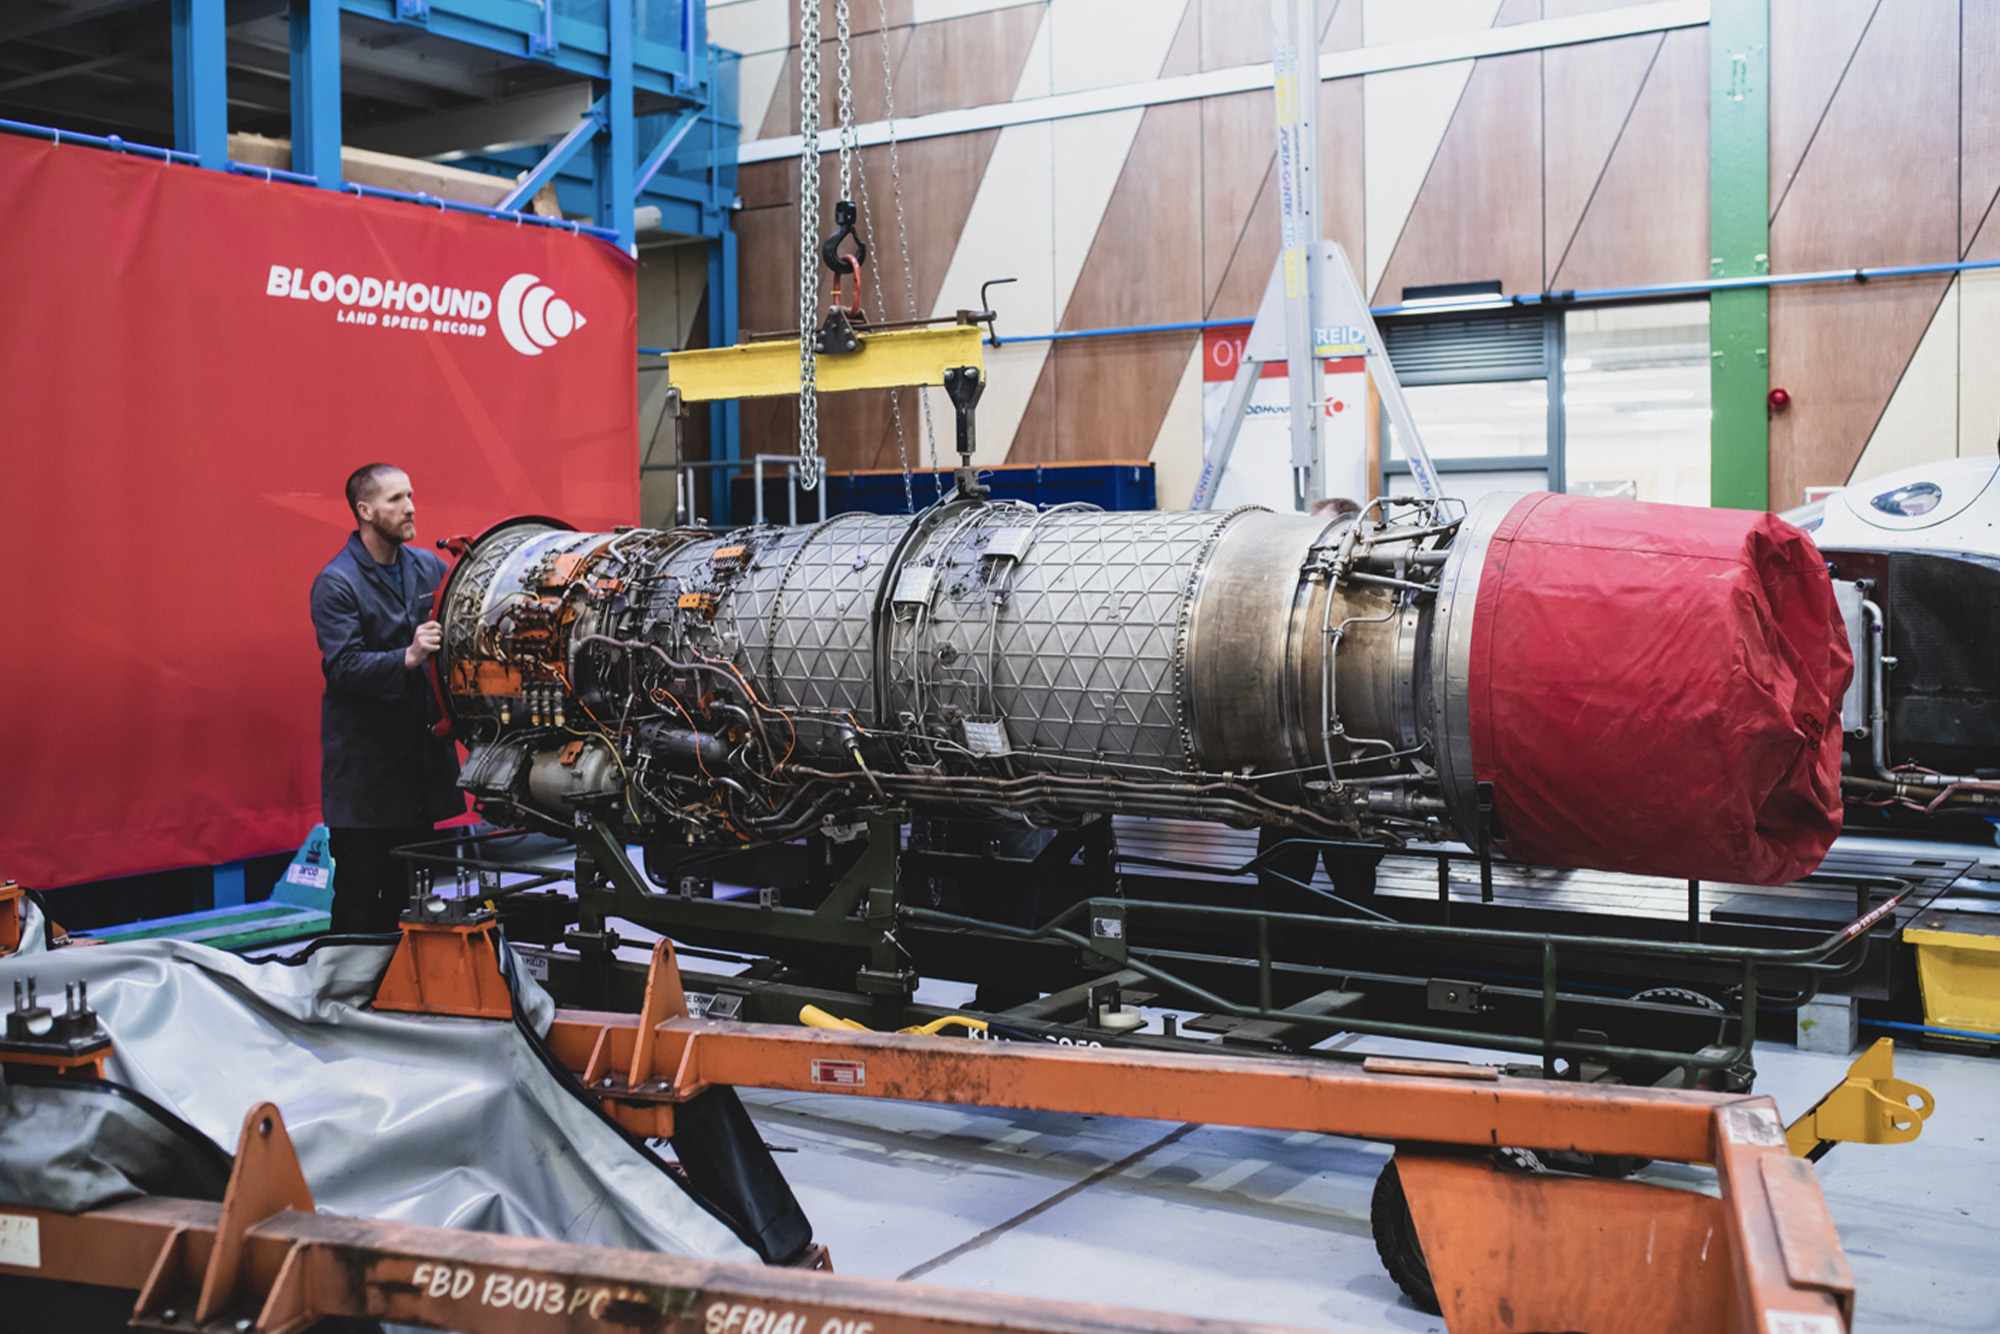 Beating heart of Bloodhound: hands-on with its jet engine